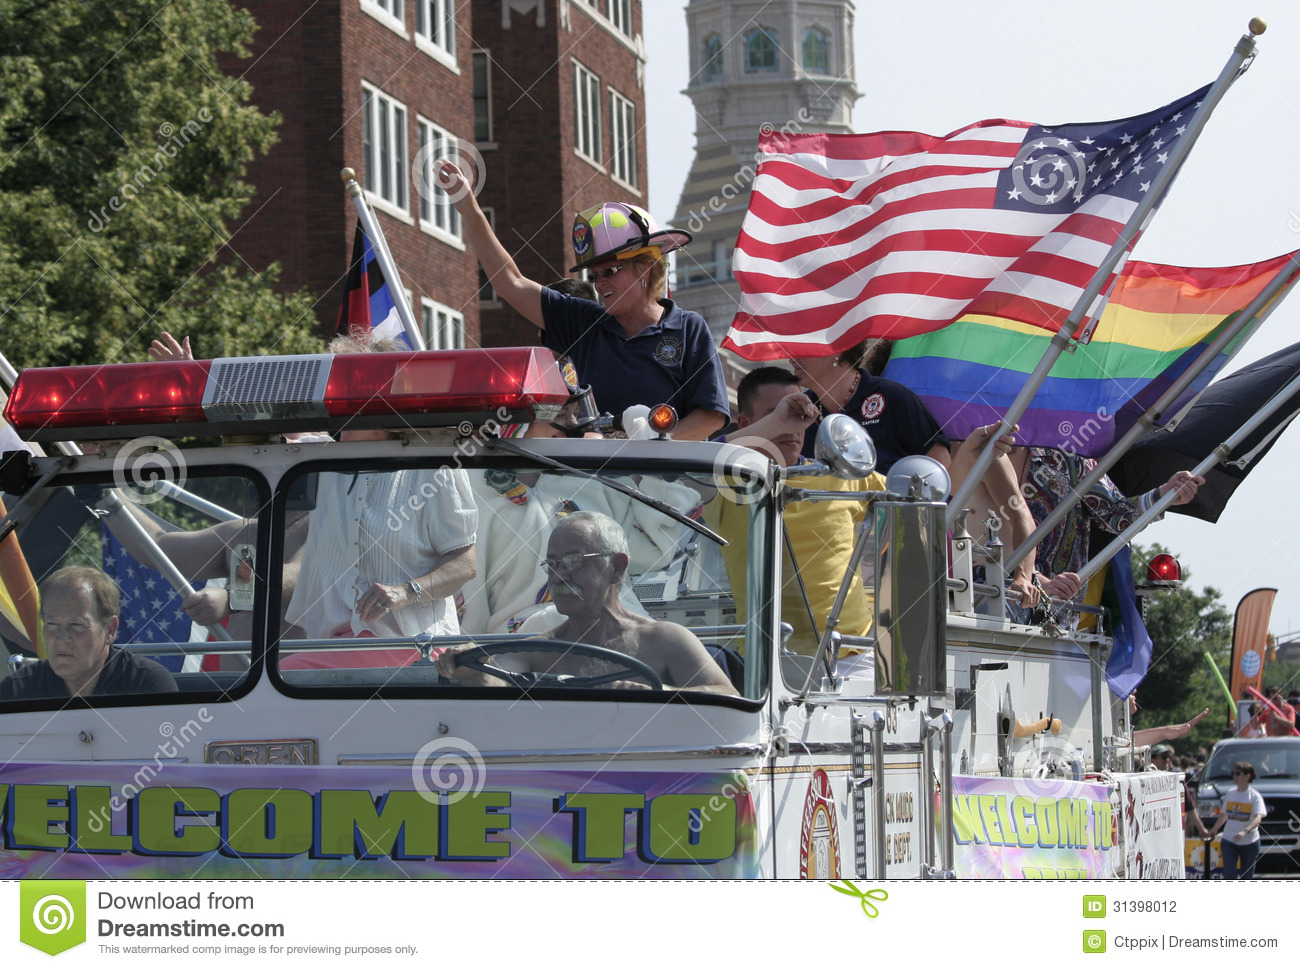 Colorful Old Decorated Firetruck with American and Rainbow Flags at Indy Pride